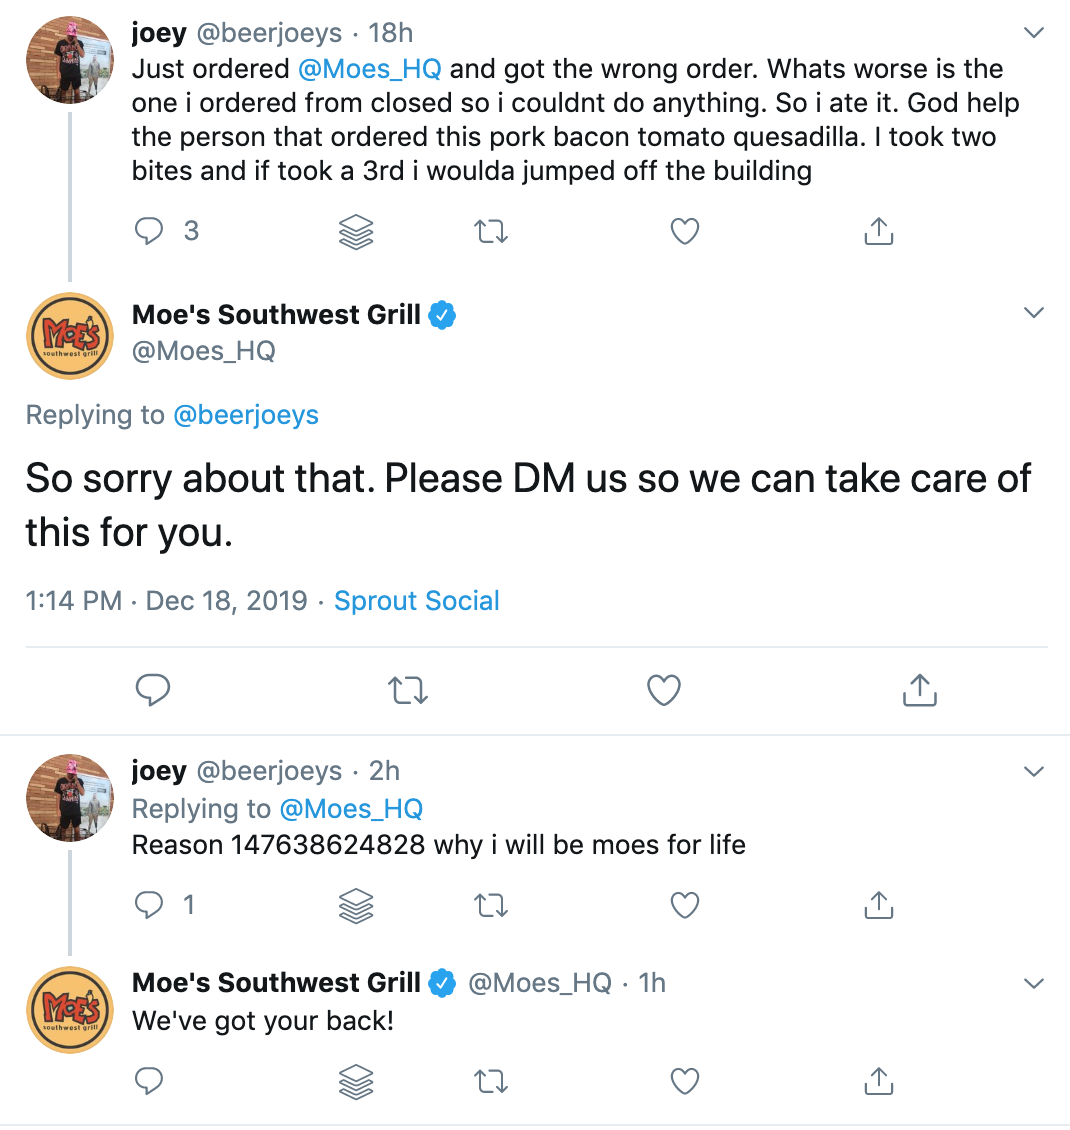 moe's responding to a bad experience on a twitter social mention